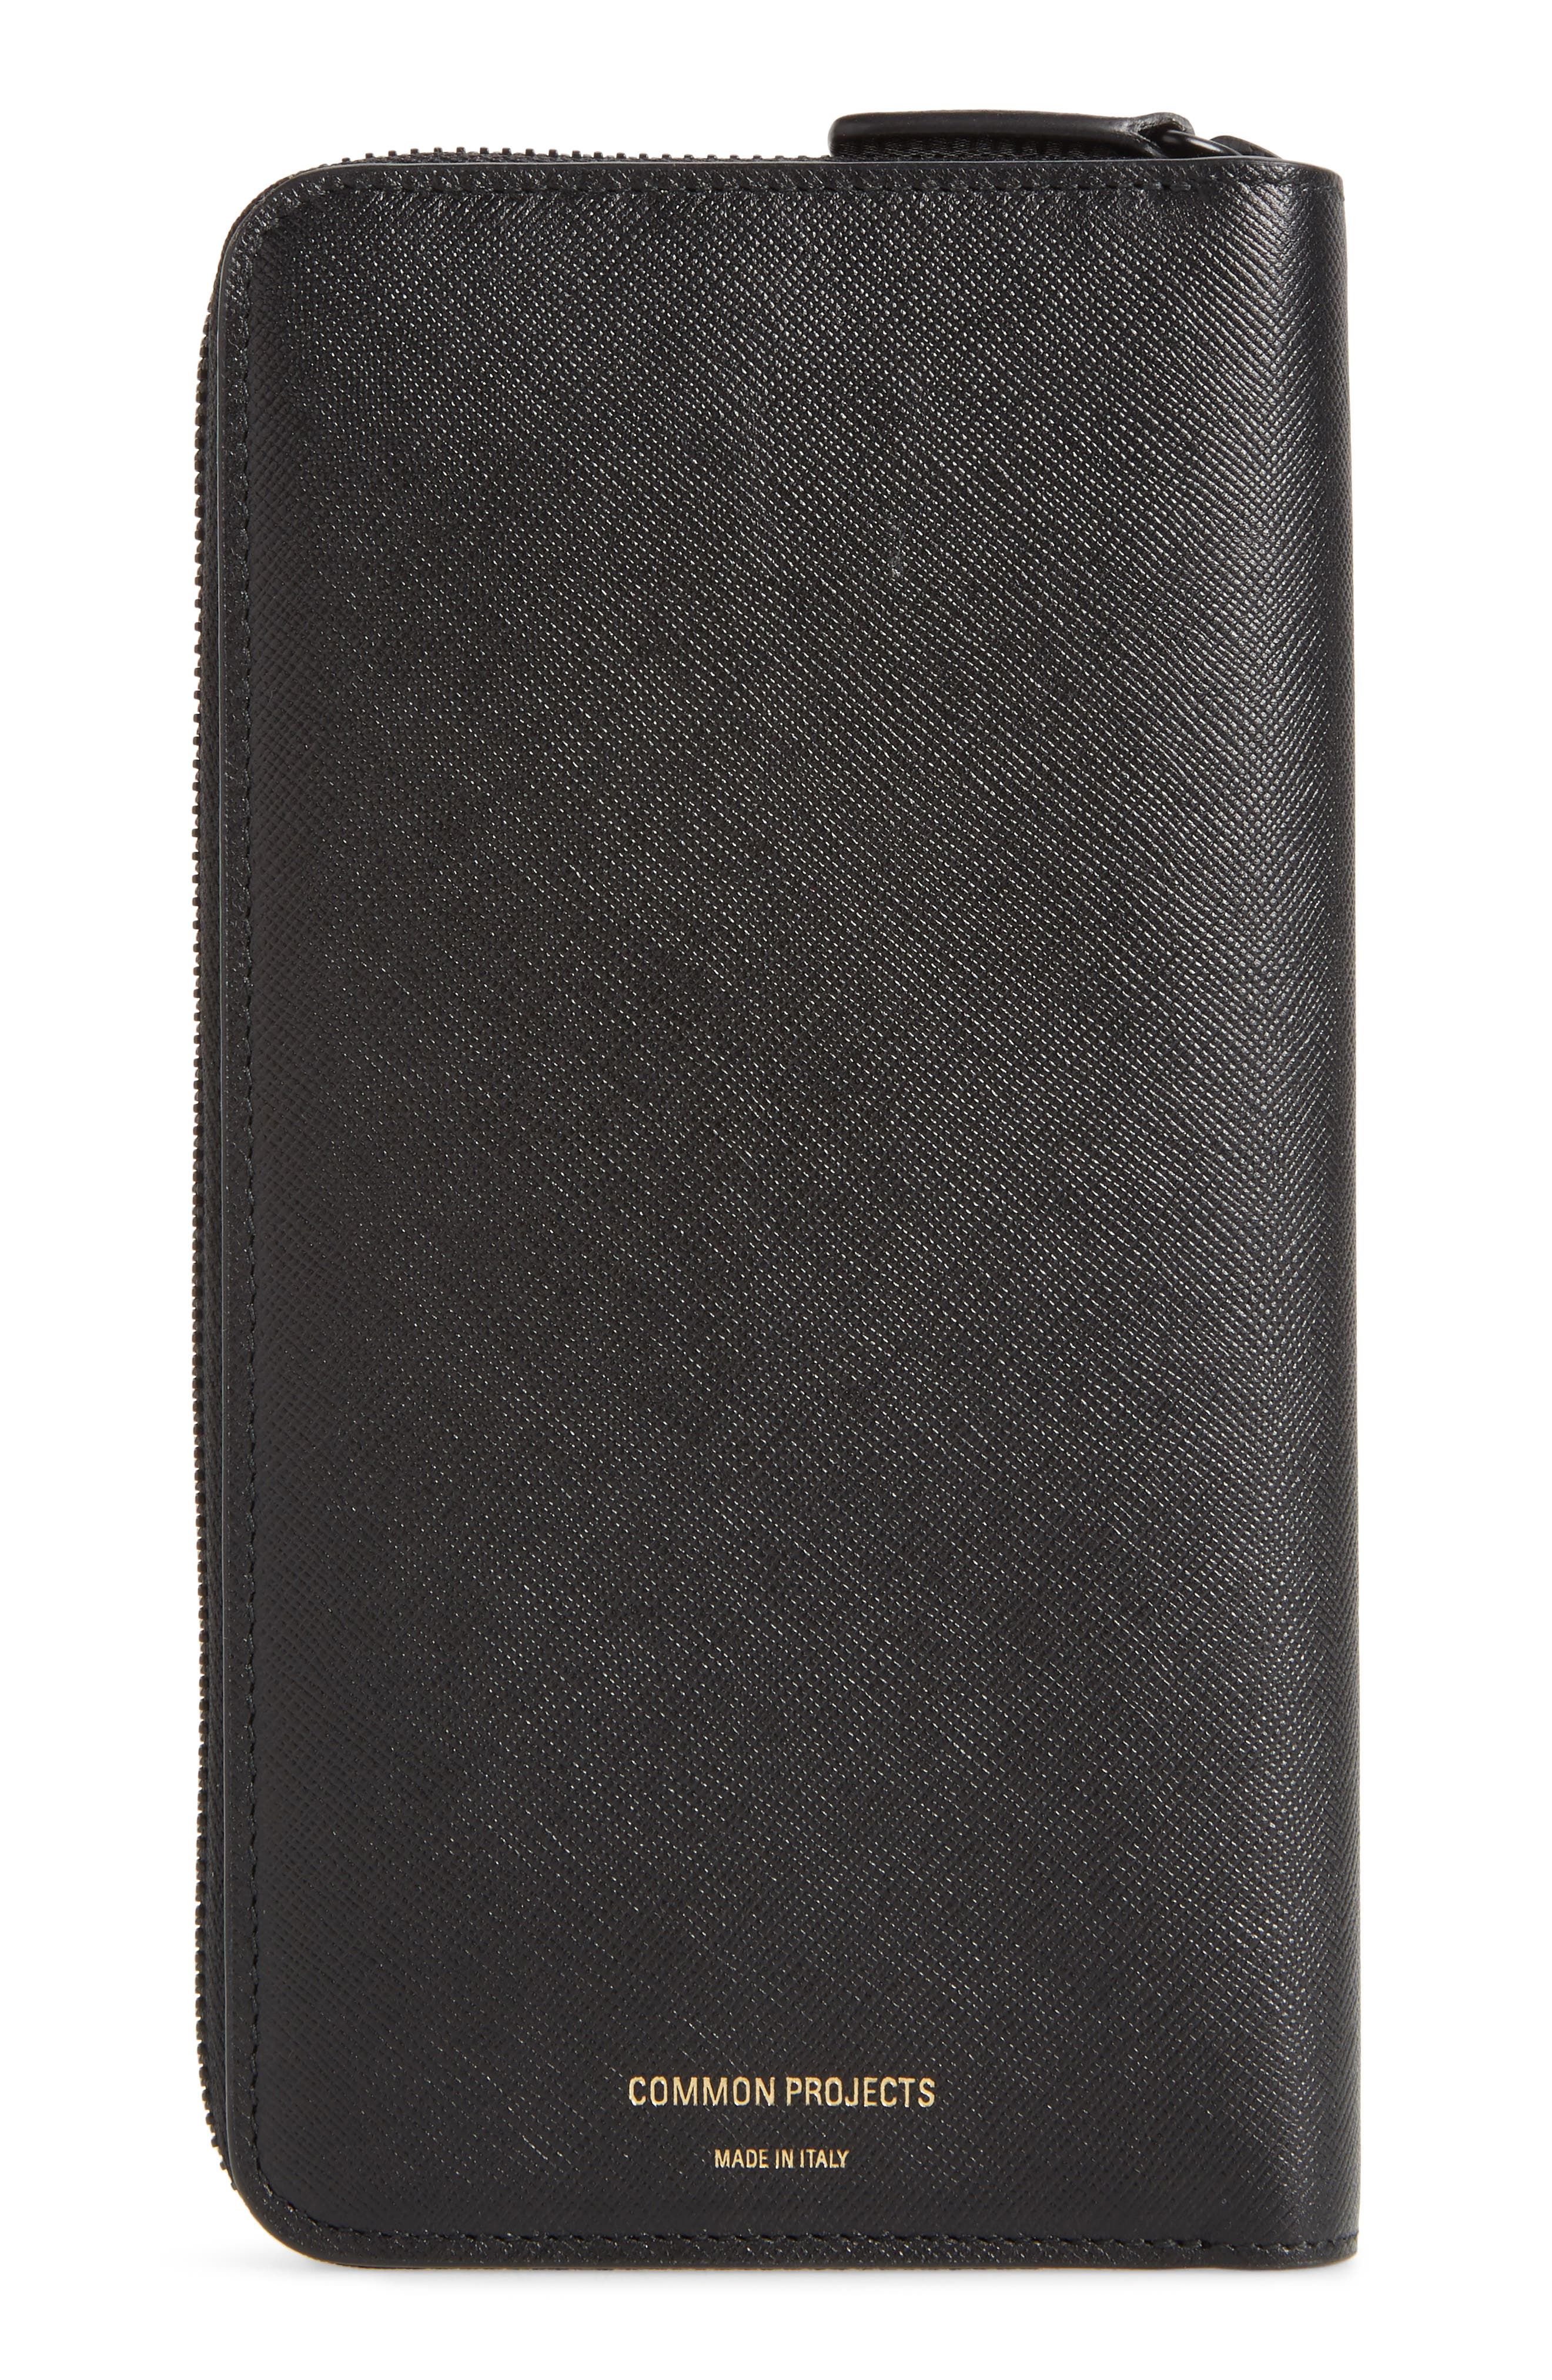 COMMON PROJECTS, Continental Saffiano Leather Zip Wallet, Main thumbnail 1, color, BLACK